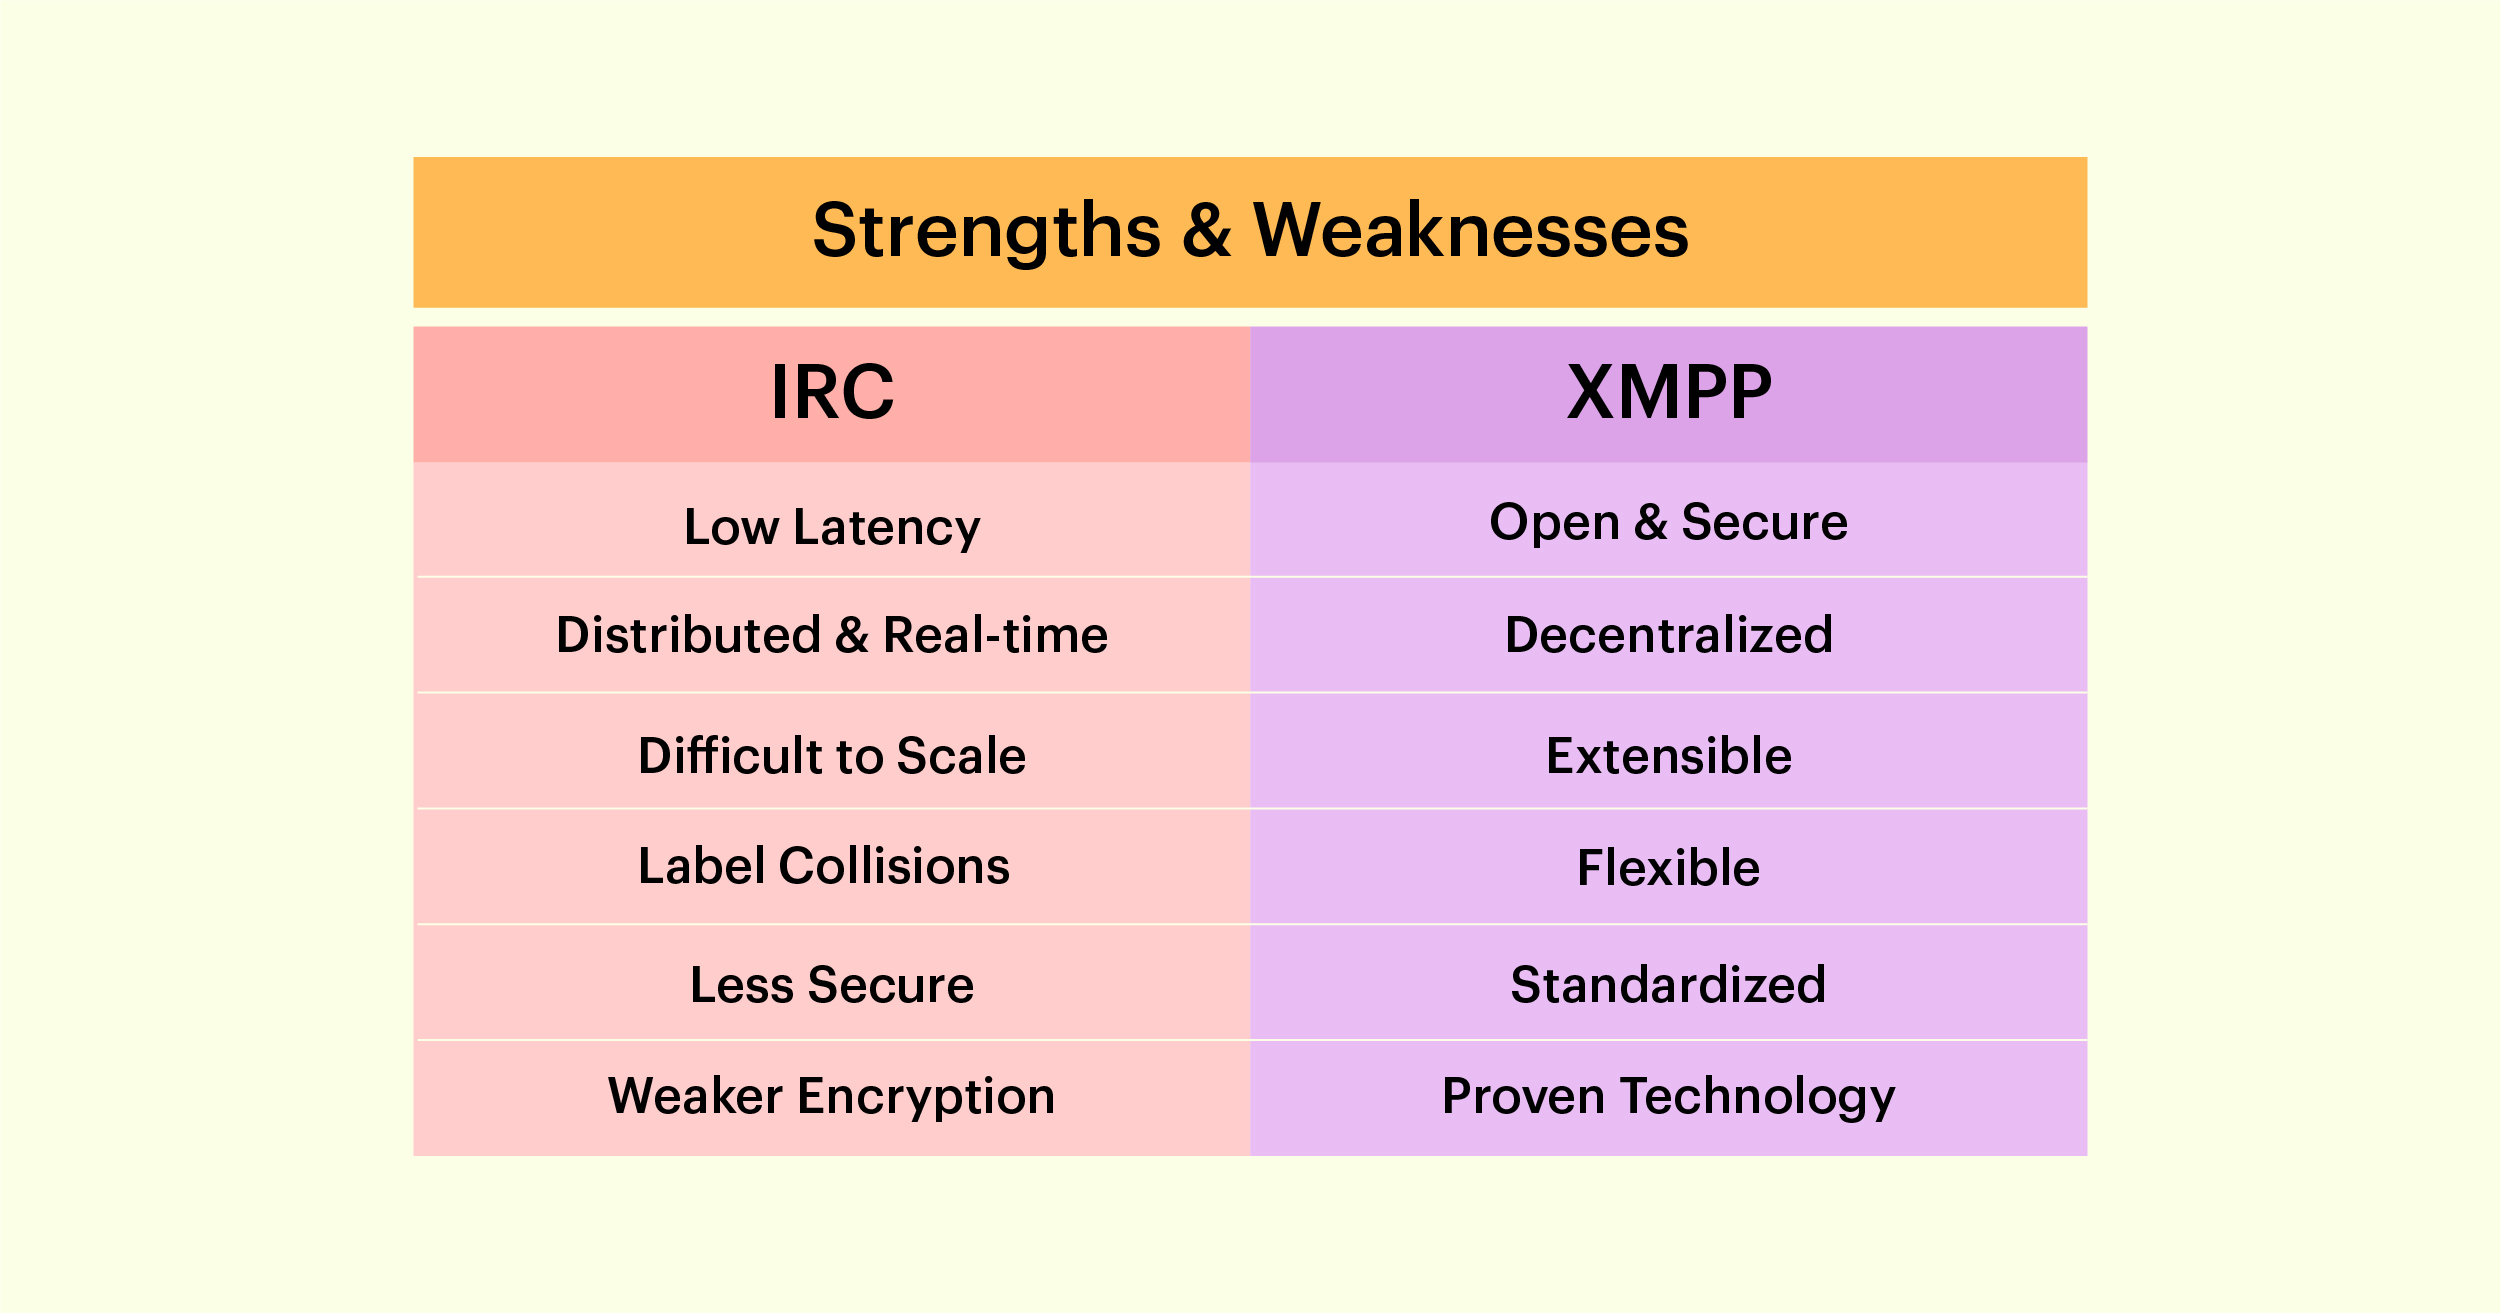 irc vs xmpp - strengths and weaknesses